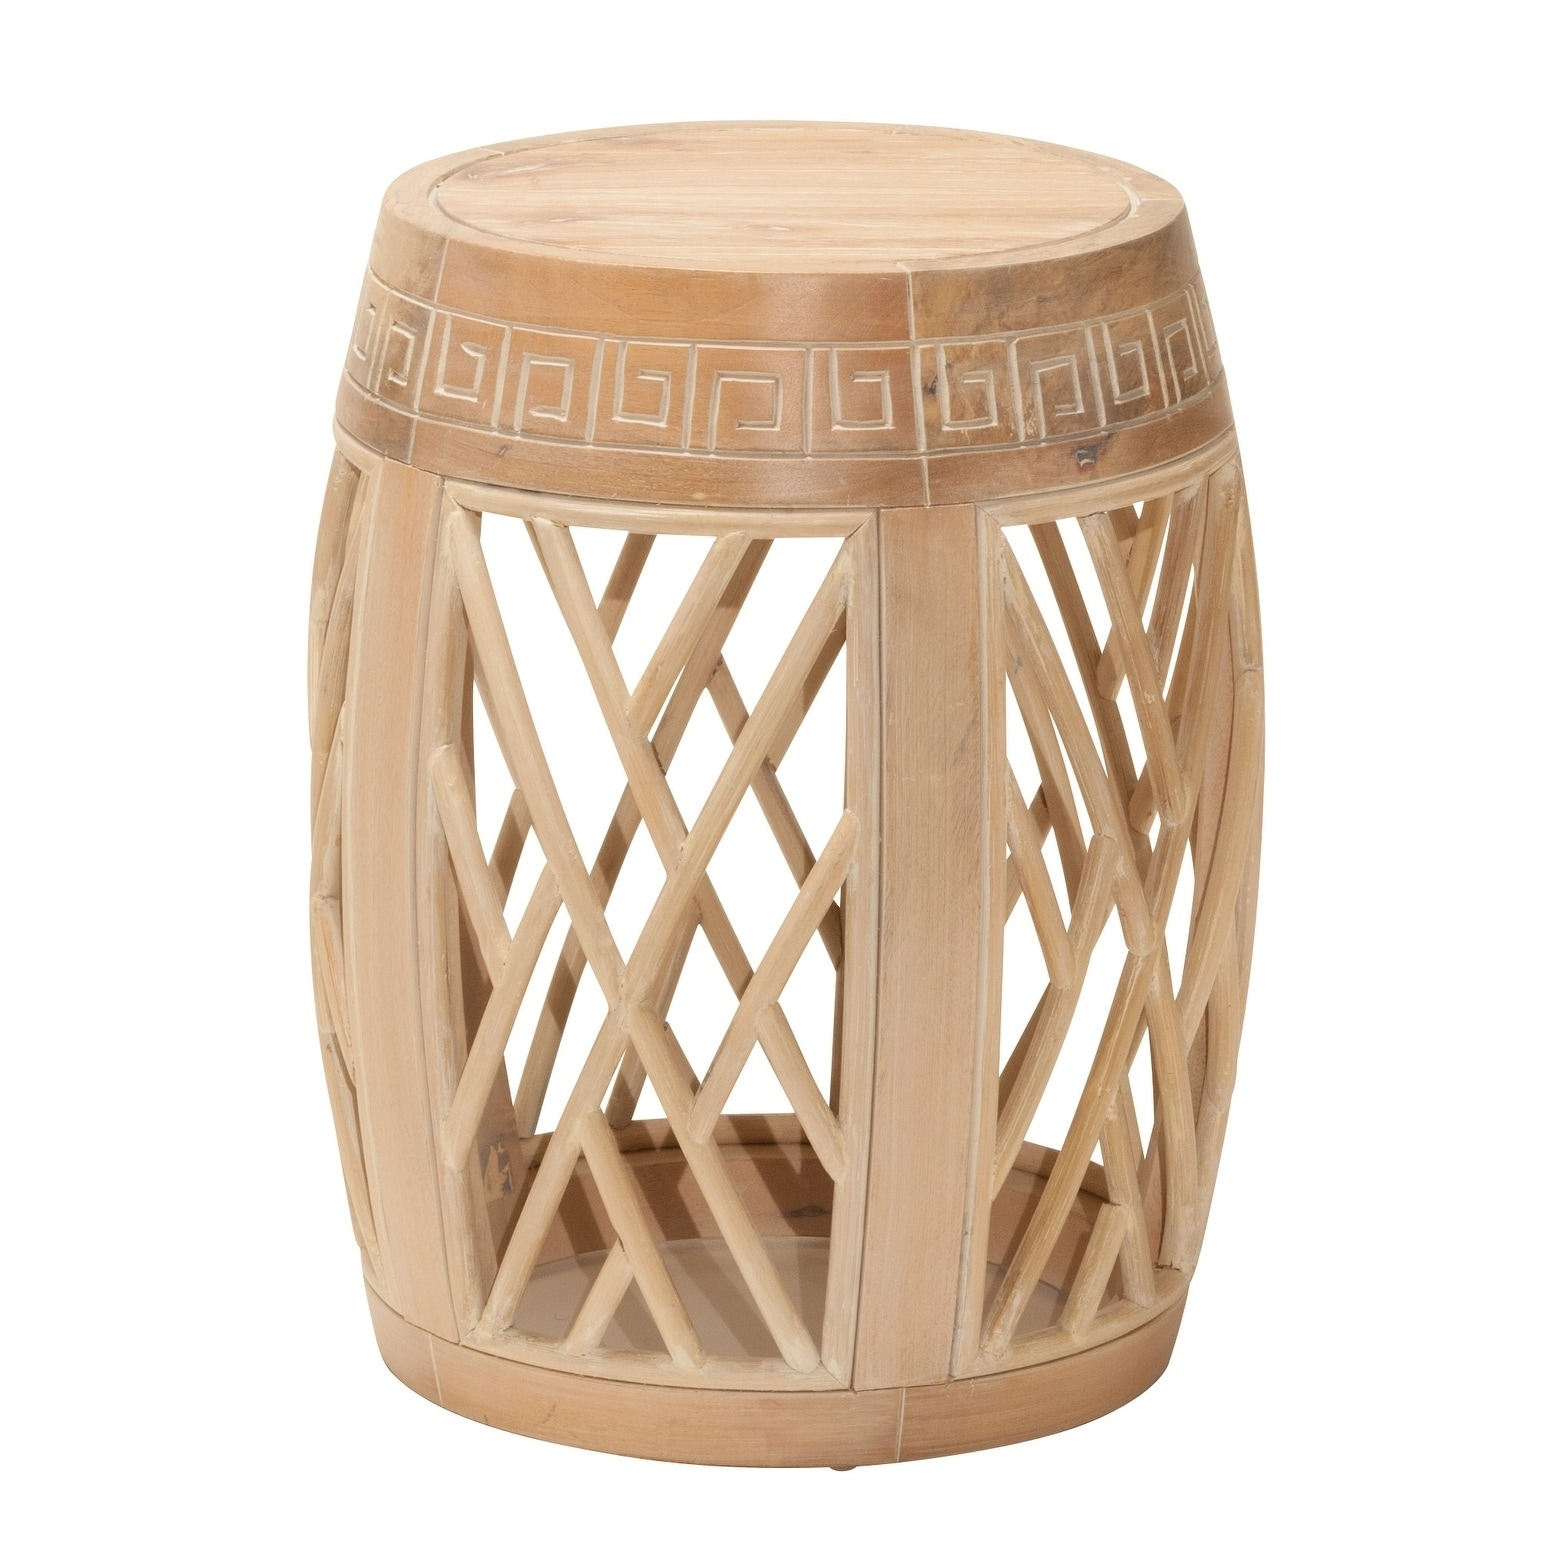 osp designs wood drum accent table antique finish free shipping today modern nightstand lamps oak mats target patio side wooden tray for coffee navy bedside stump frames small